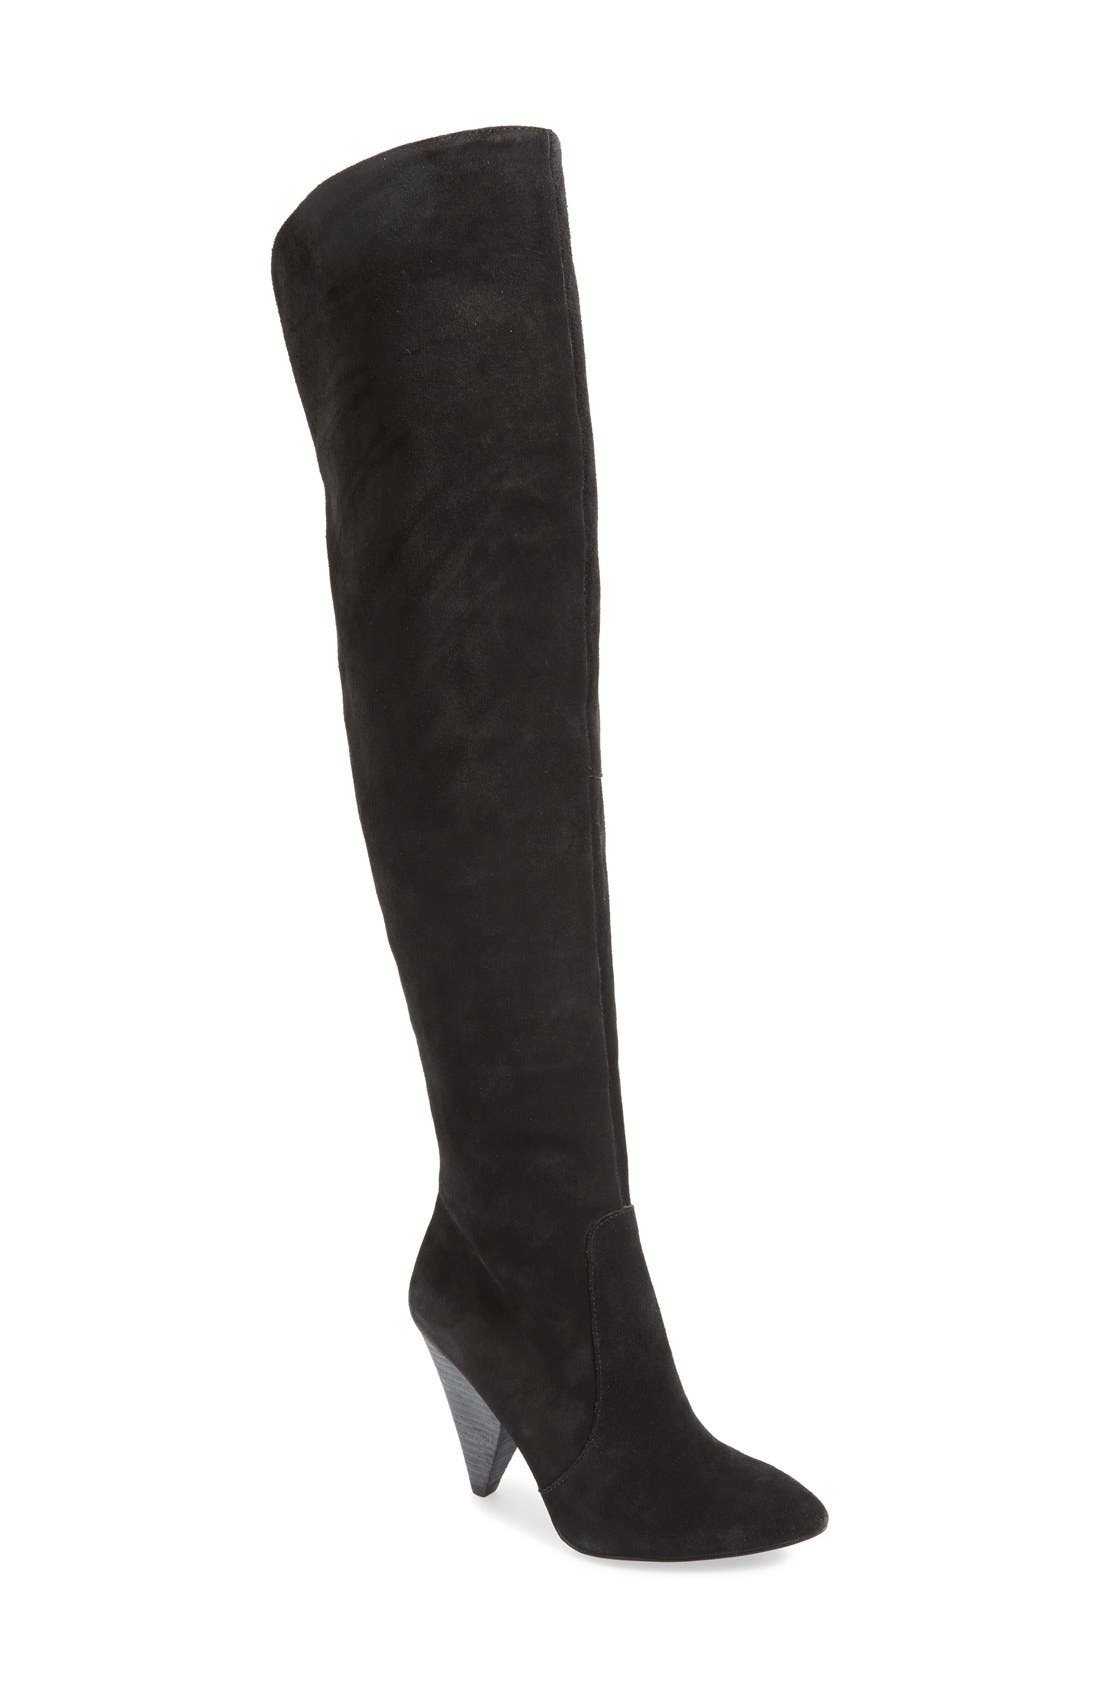 Alternate Image 1 Selected - Vince Camuto 'Hollie' Over the Knee Pointy Toe Suede Boot (Women)